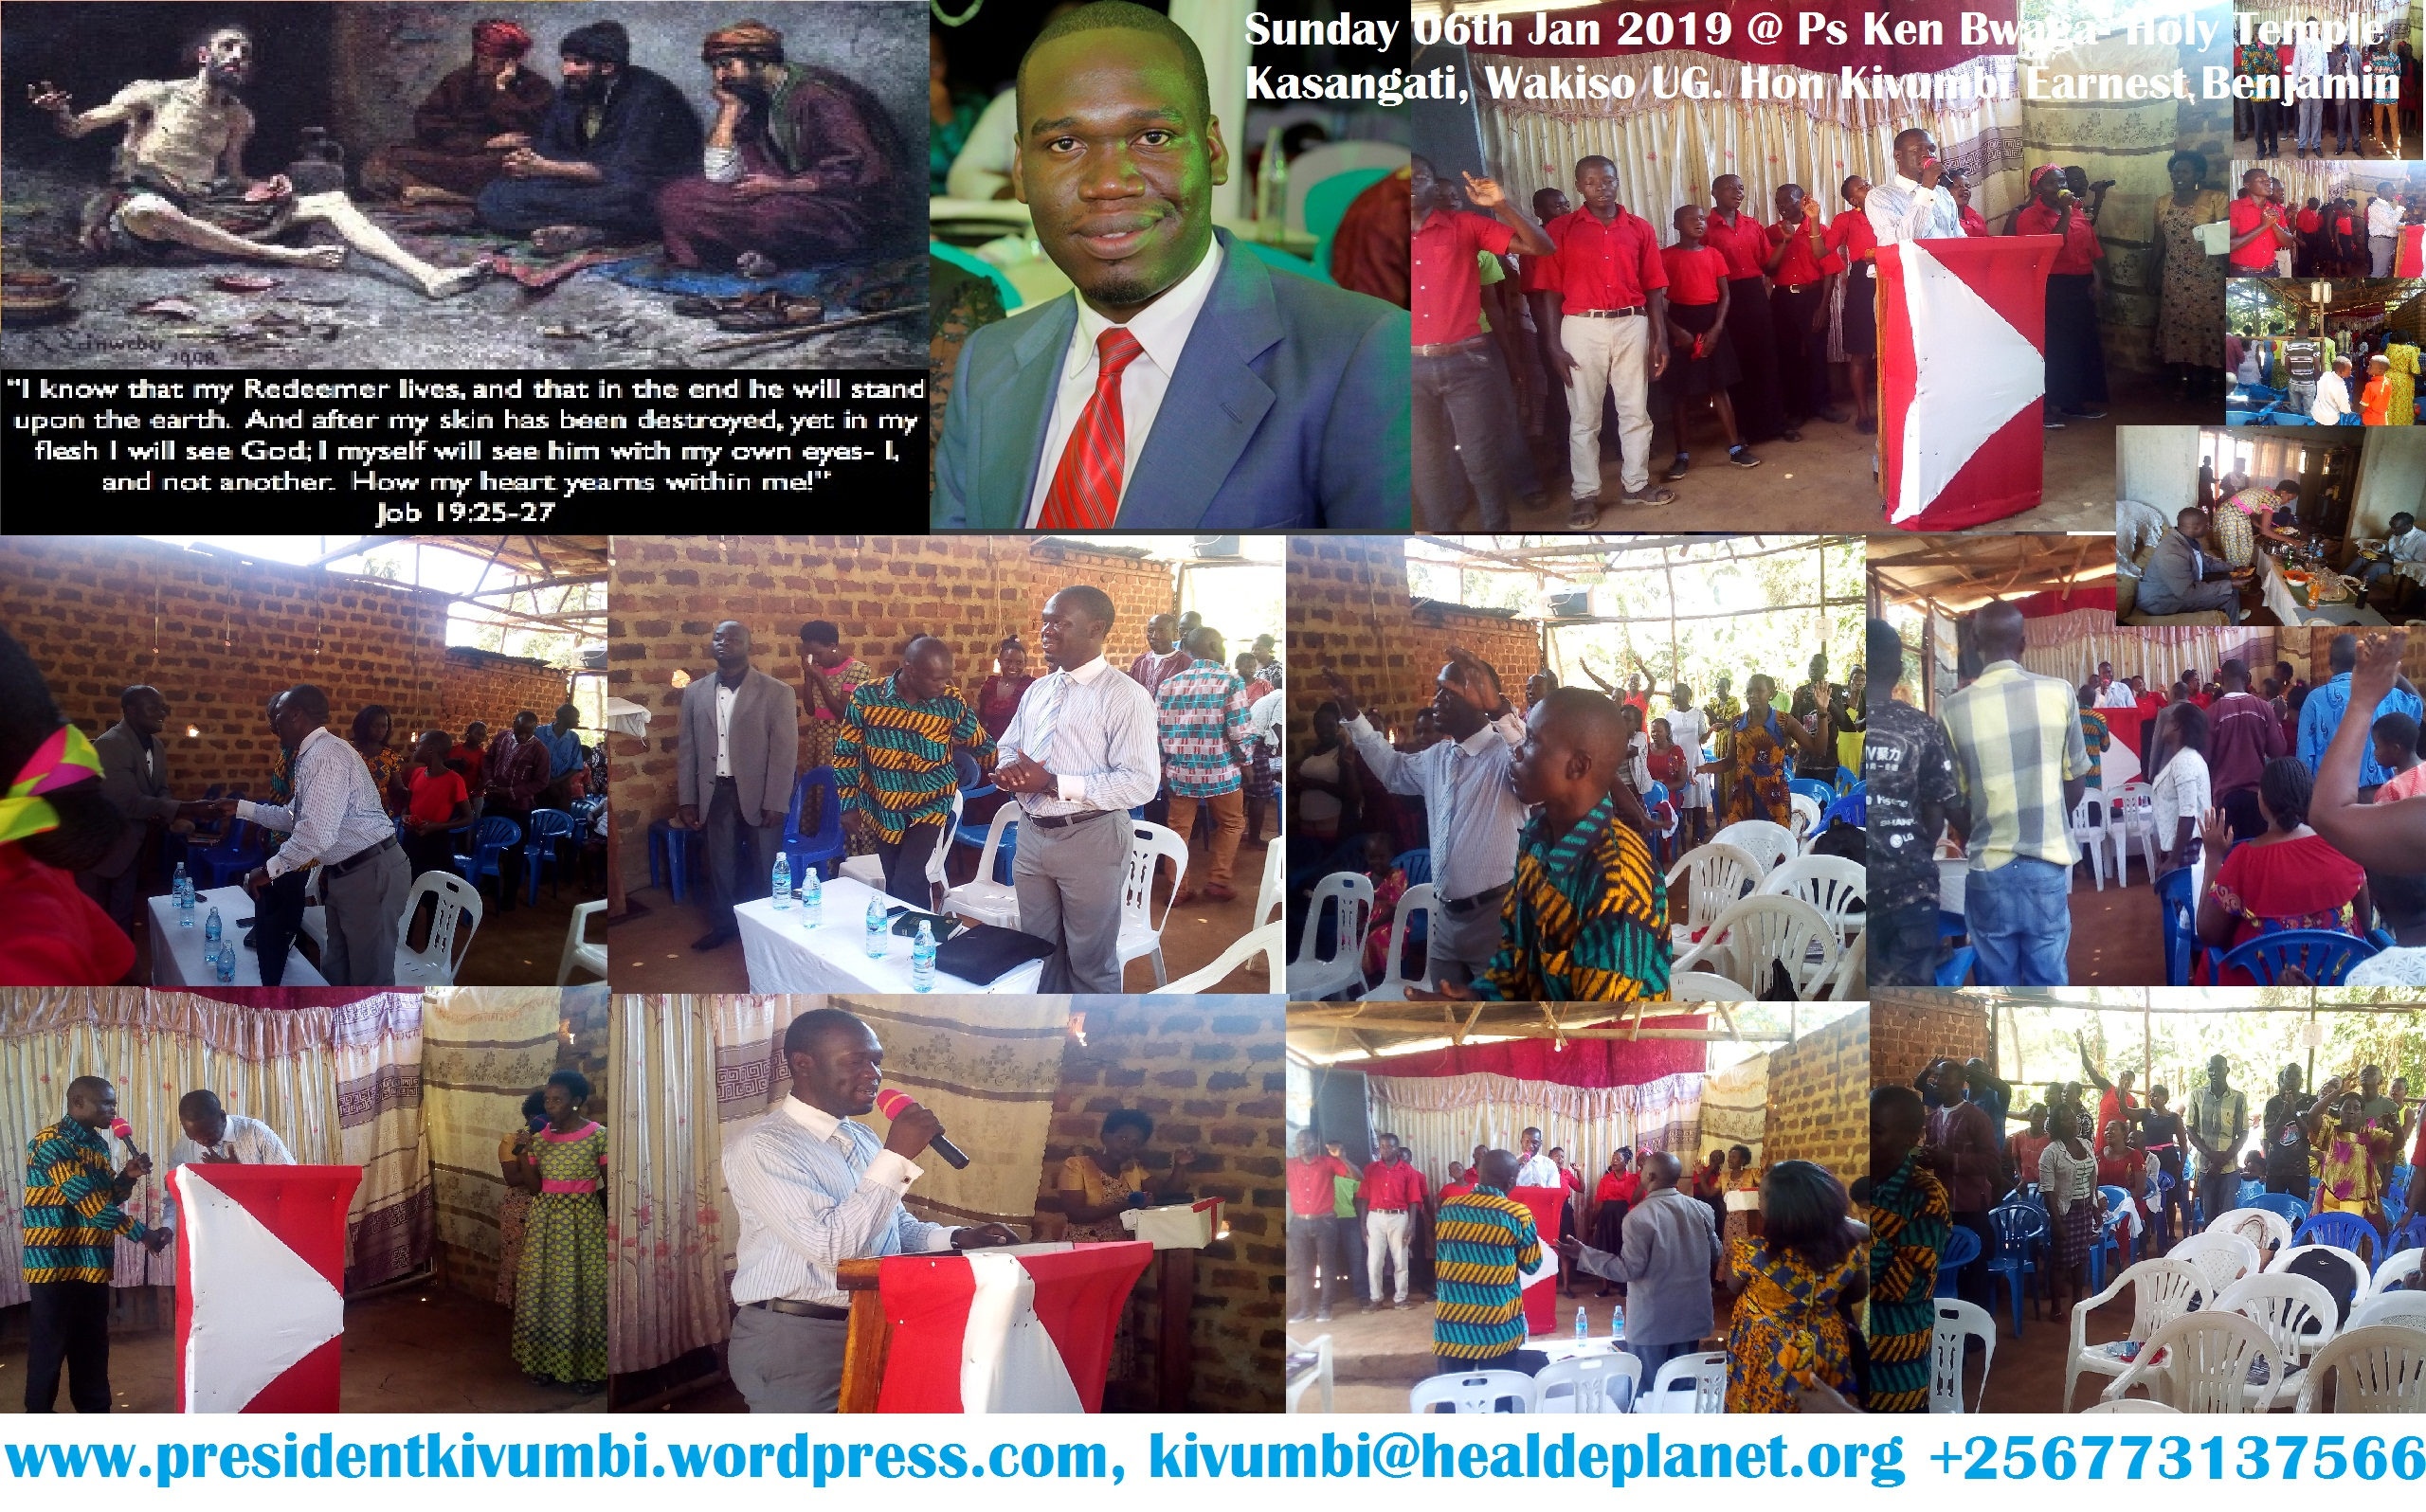 My Redeemer Liveth-Kivumbi Sermon in Kasangati- Job 19:25